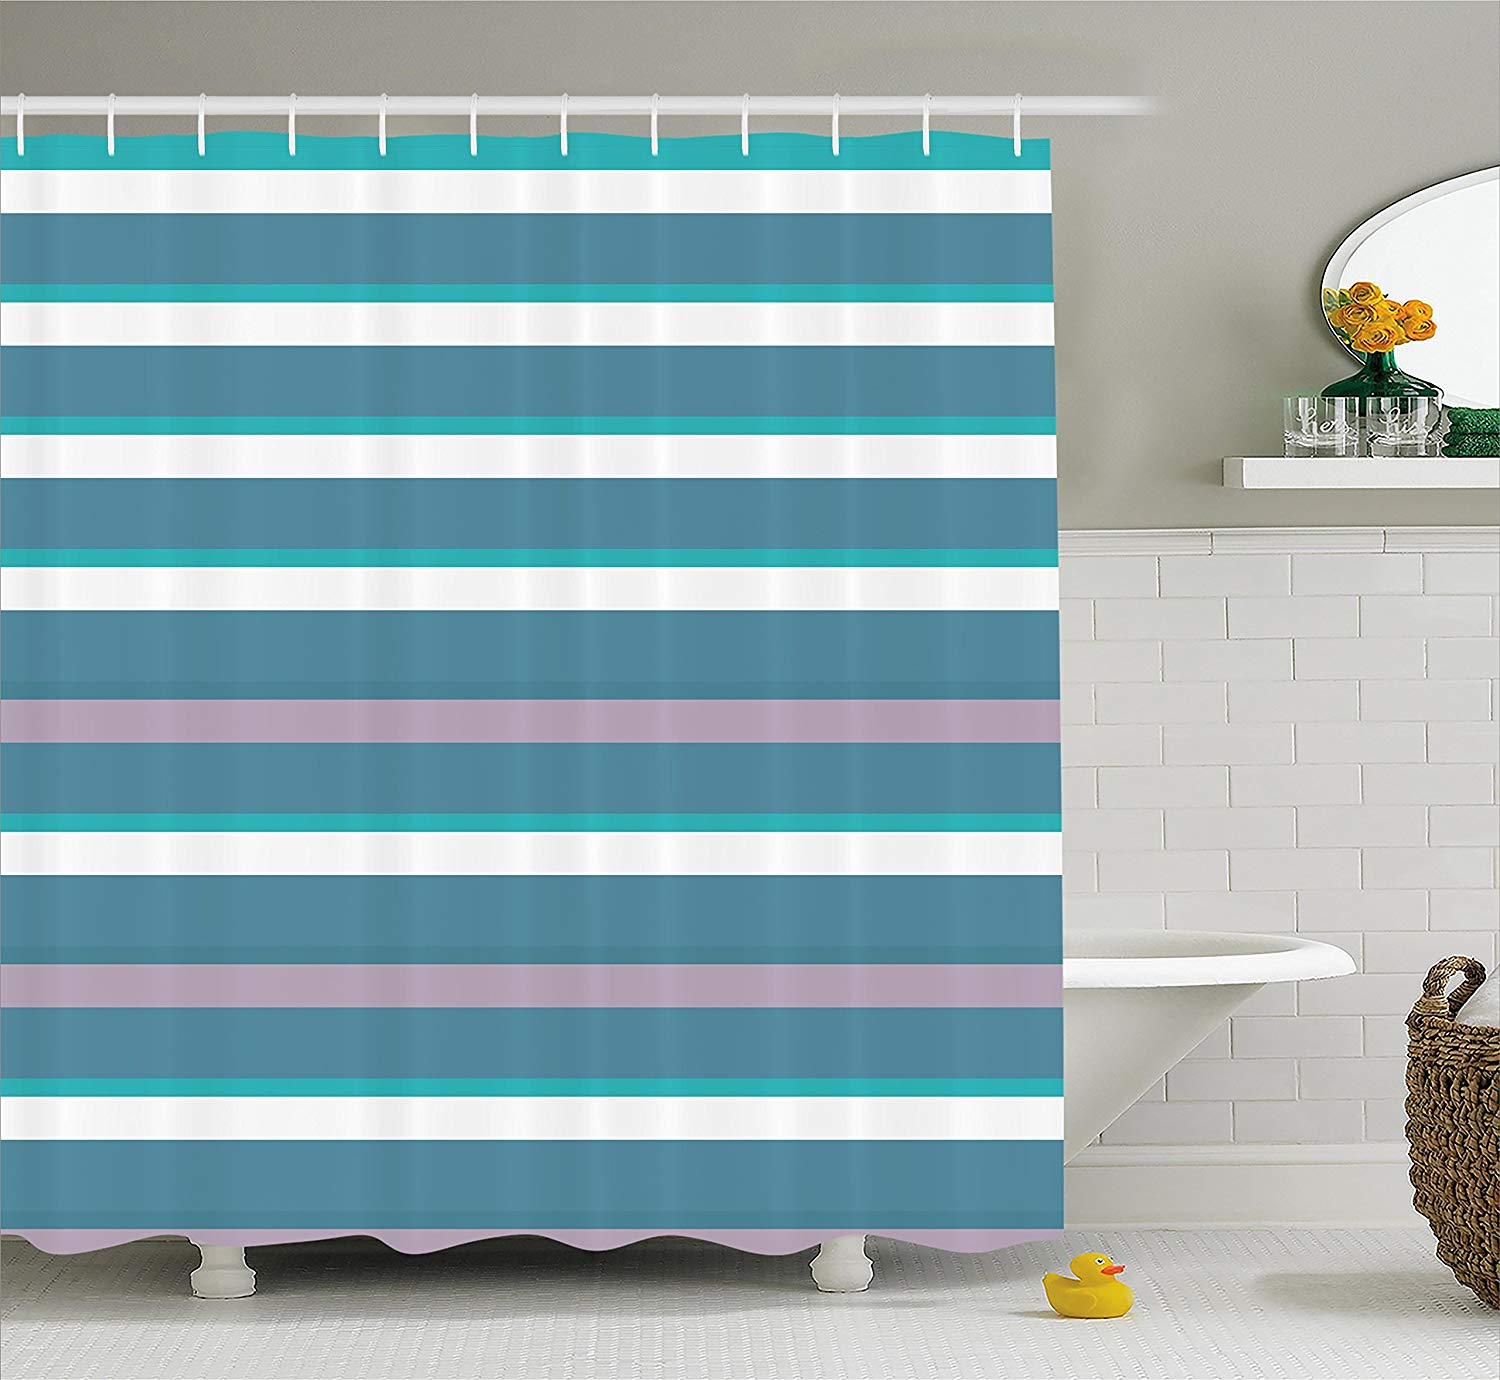 Us 15 99 36 Off Striped Shower Curtain Turquoise Dark Teal Stripes Thick And Thin Lines With Aqua Colors Pattern Art Print Fabric Bathroom Decor In